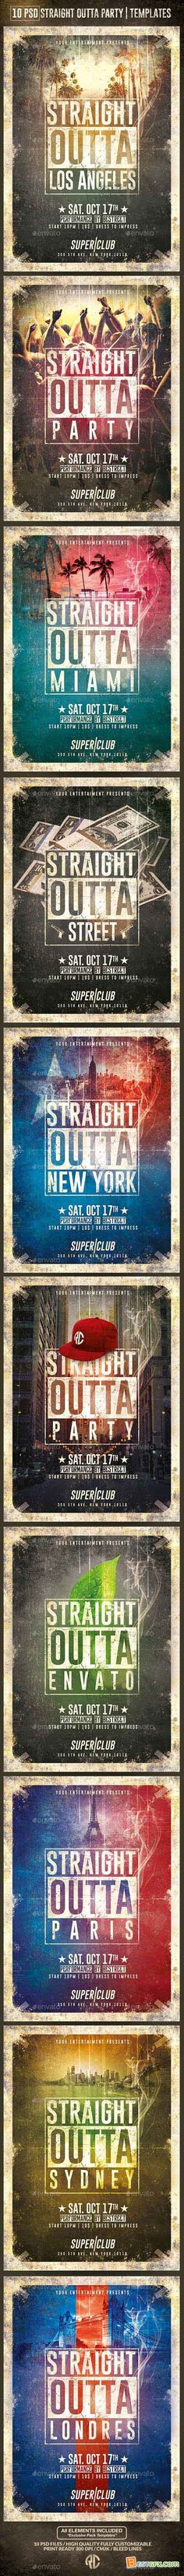 Graphicriver 10 Flyers Straight Outta Party Psd Templates 12690897